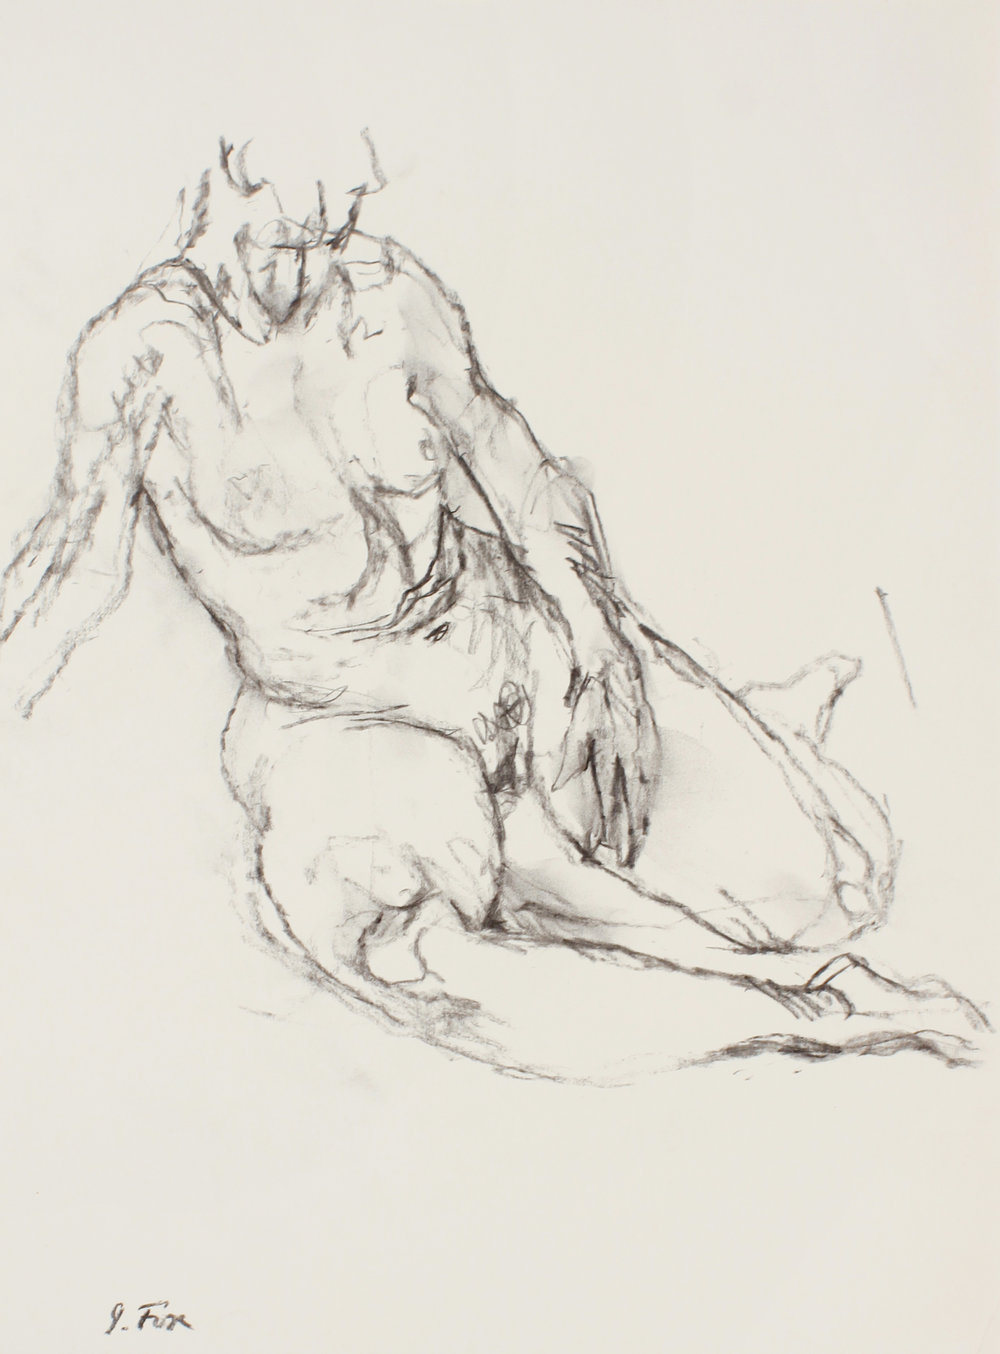 Seated Nude on Floor